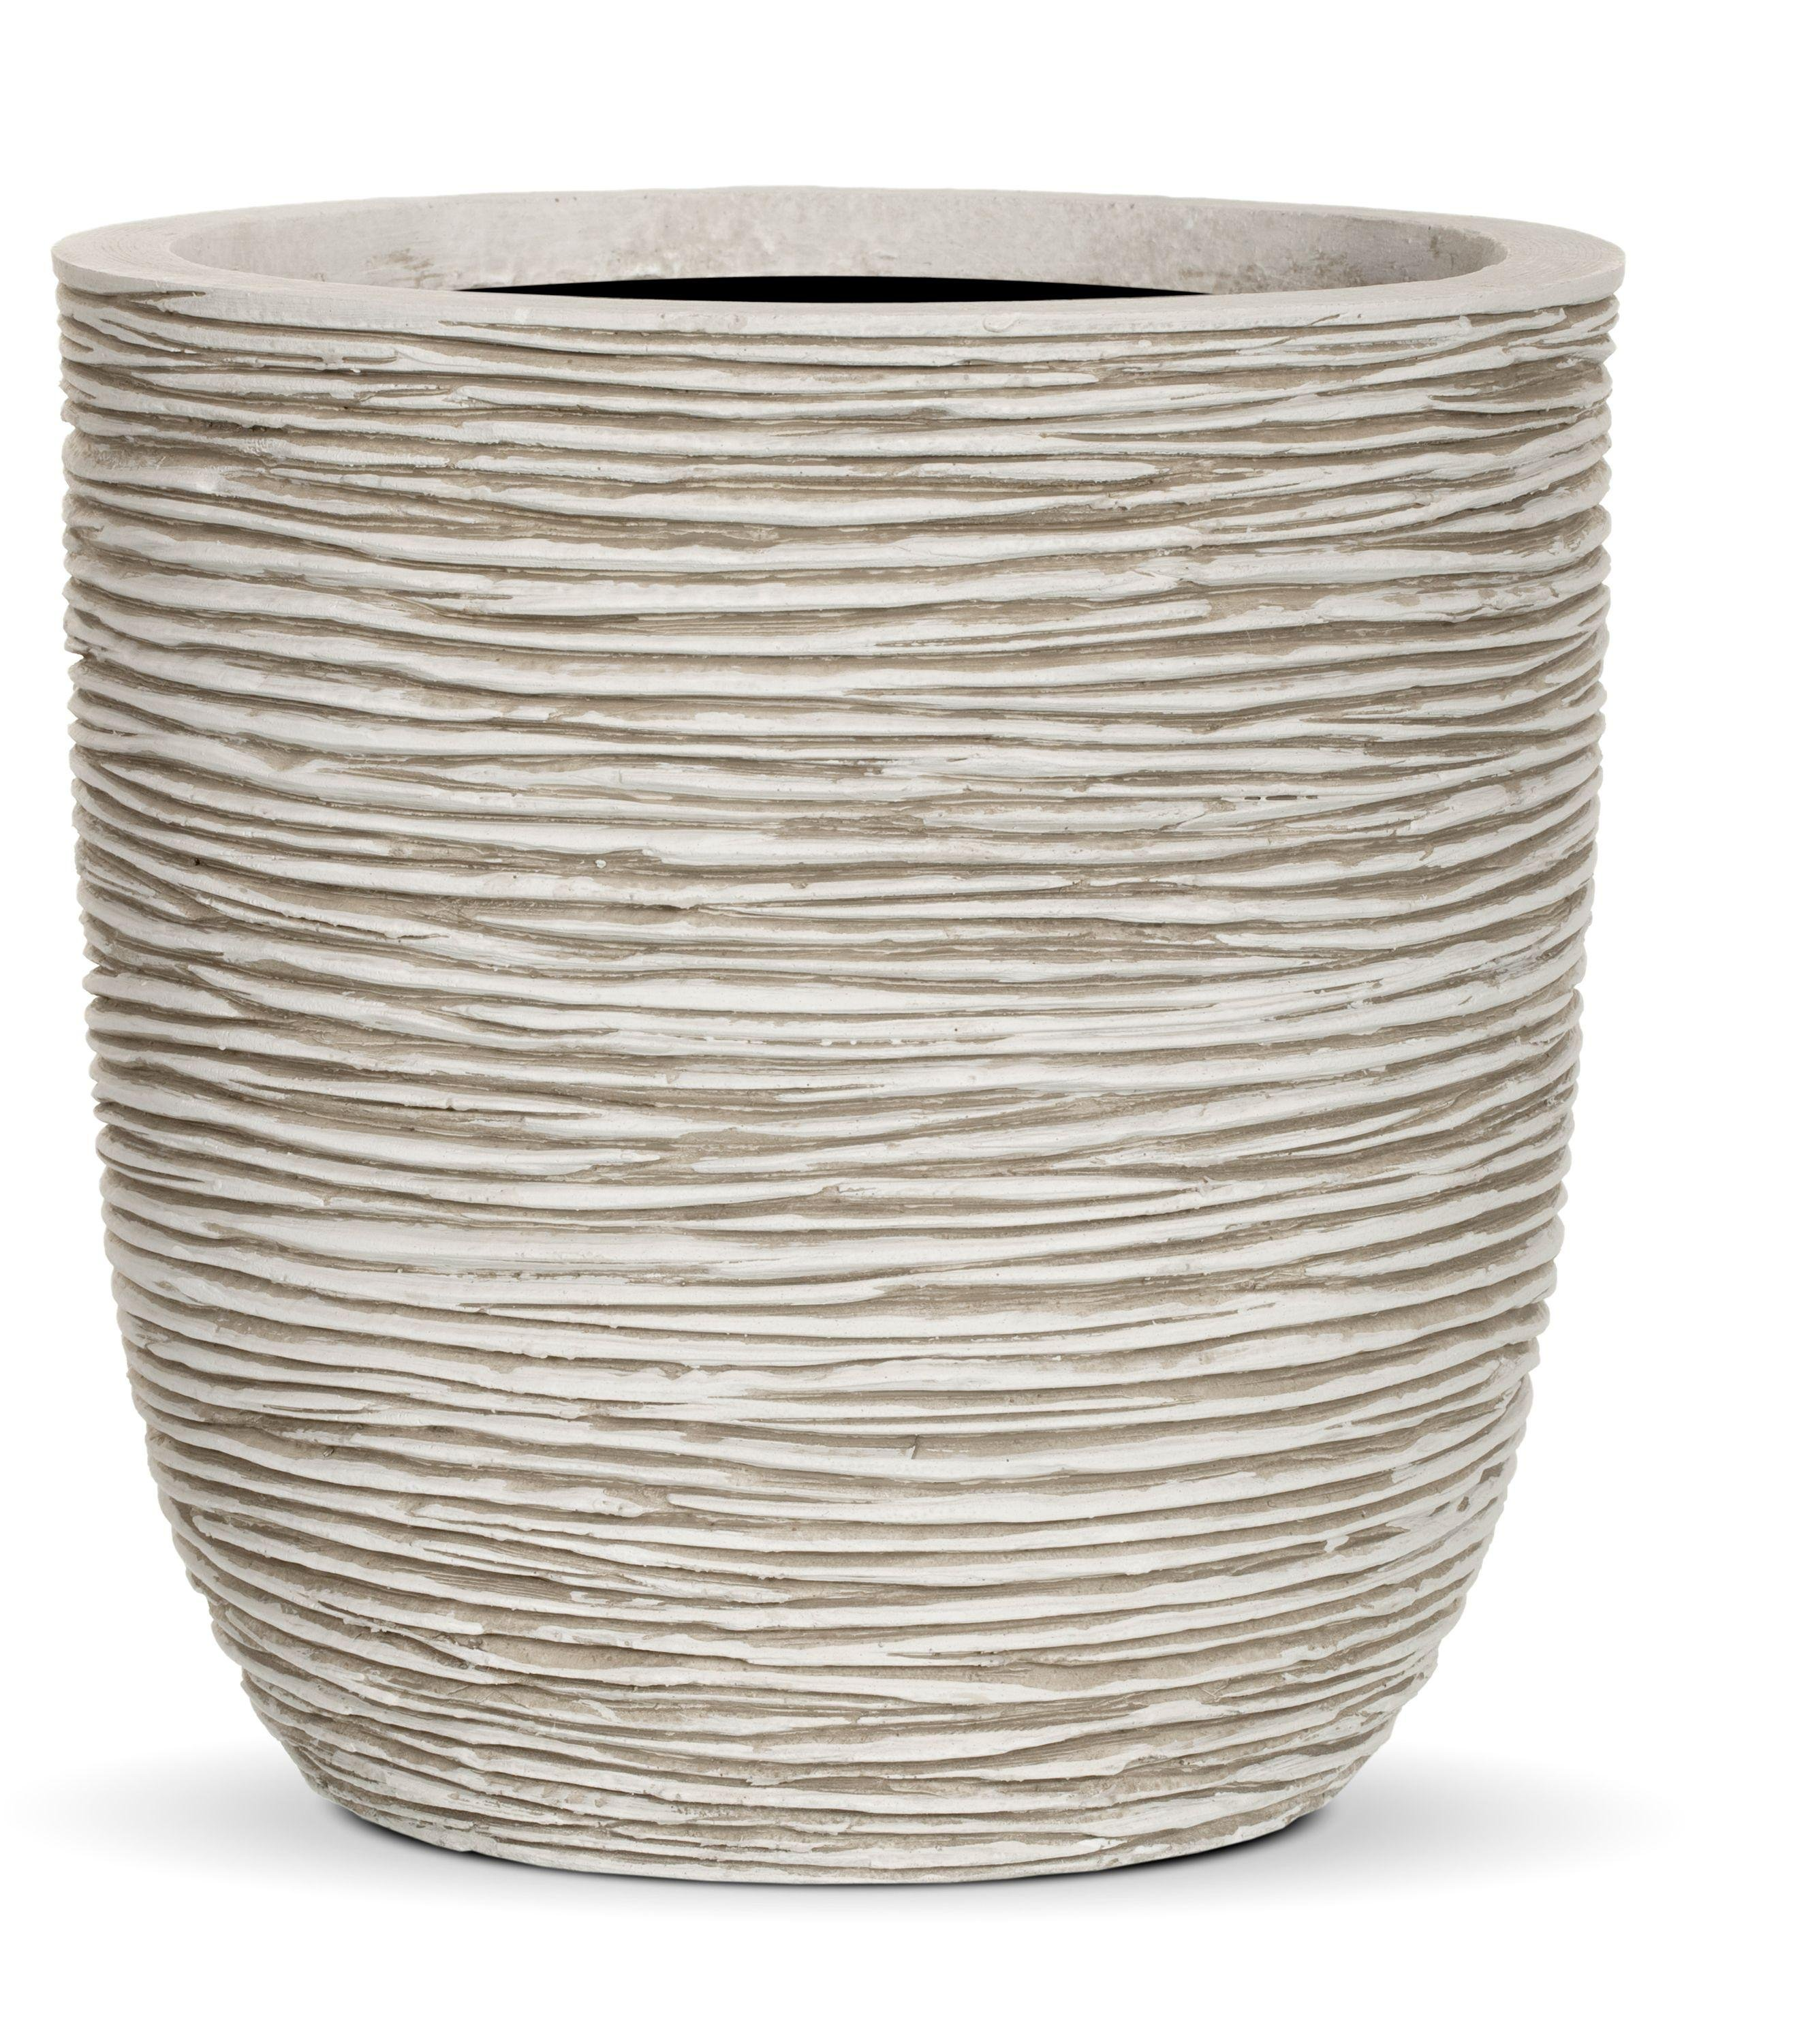 Capi - Nature White Ribbed Planter Egg - 28 x 26cm lowest price